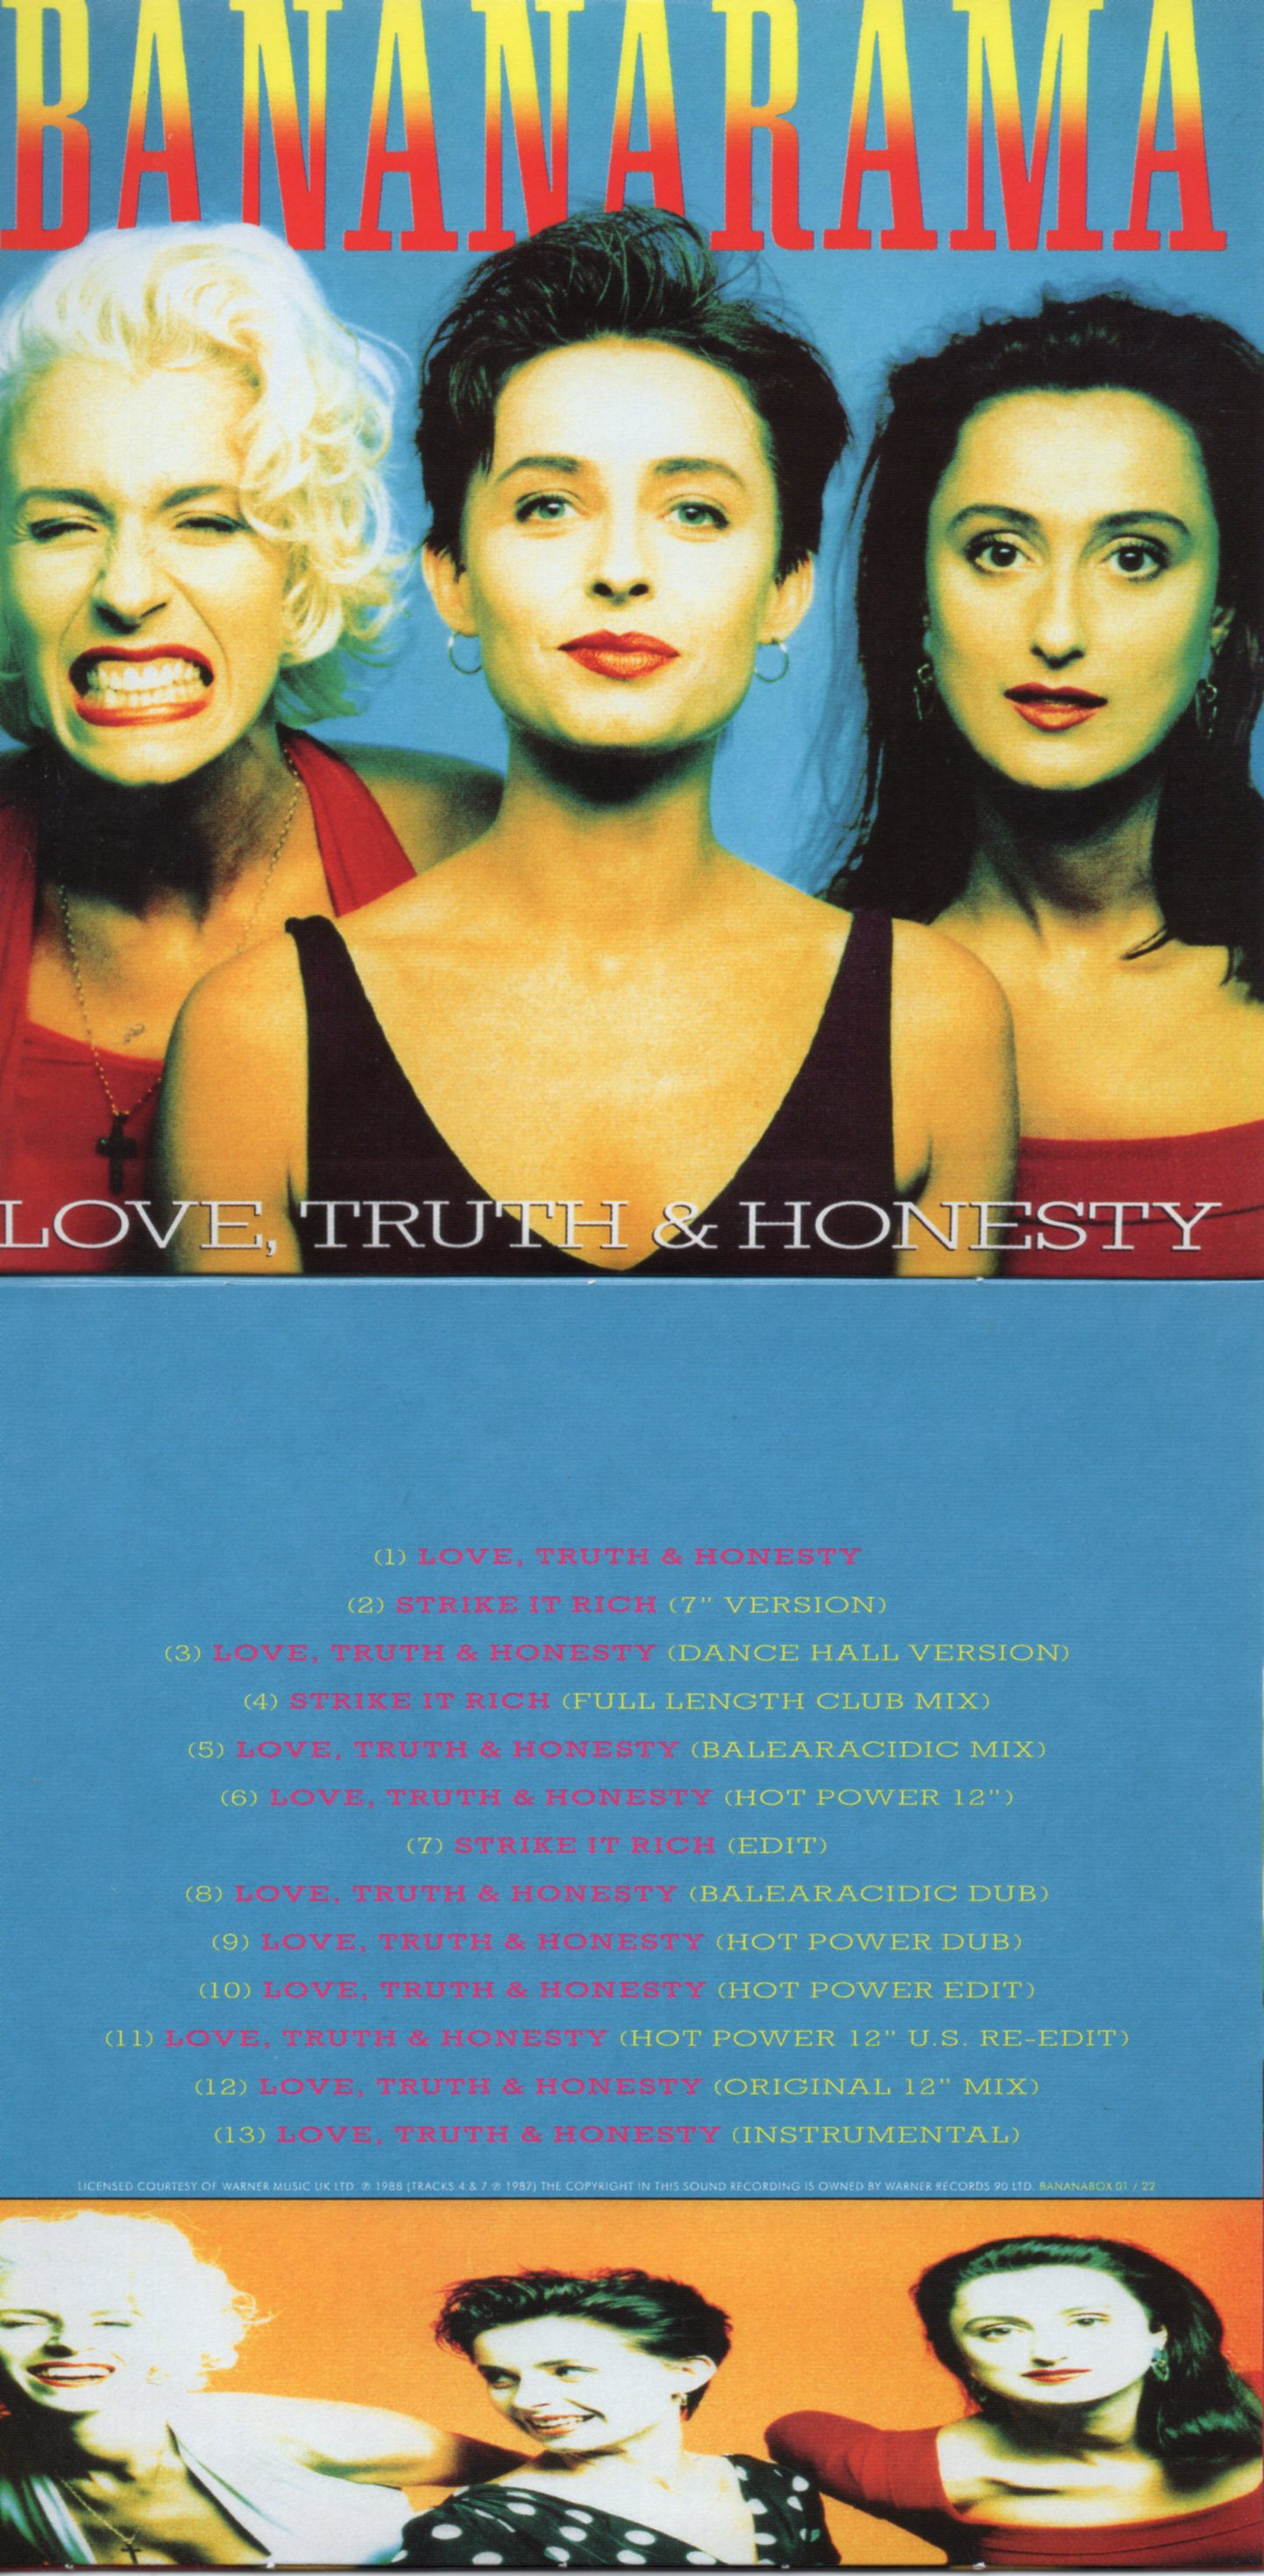 BANANARAMA - Love, Truth & Honesty (1988 13-track Card Sleeve)